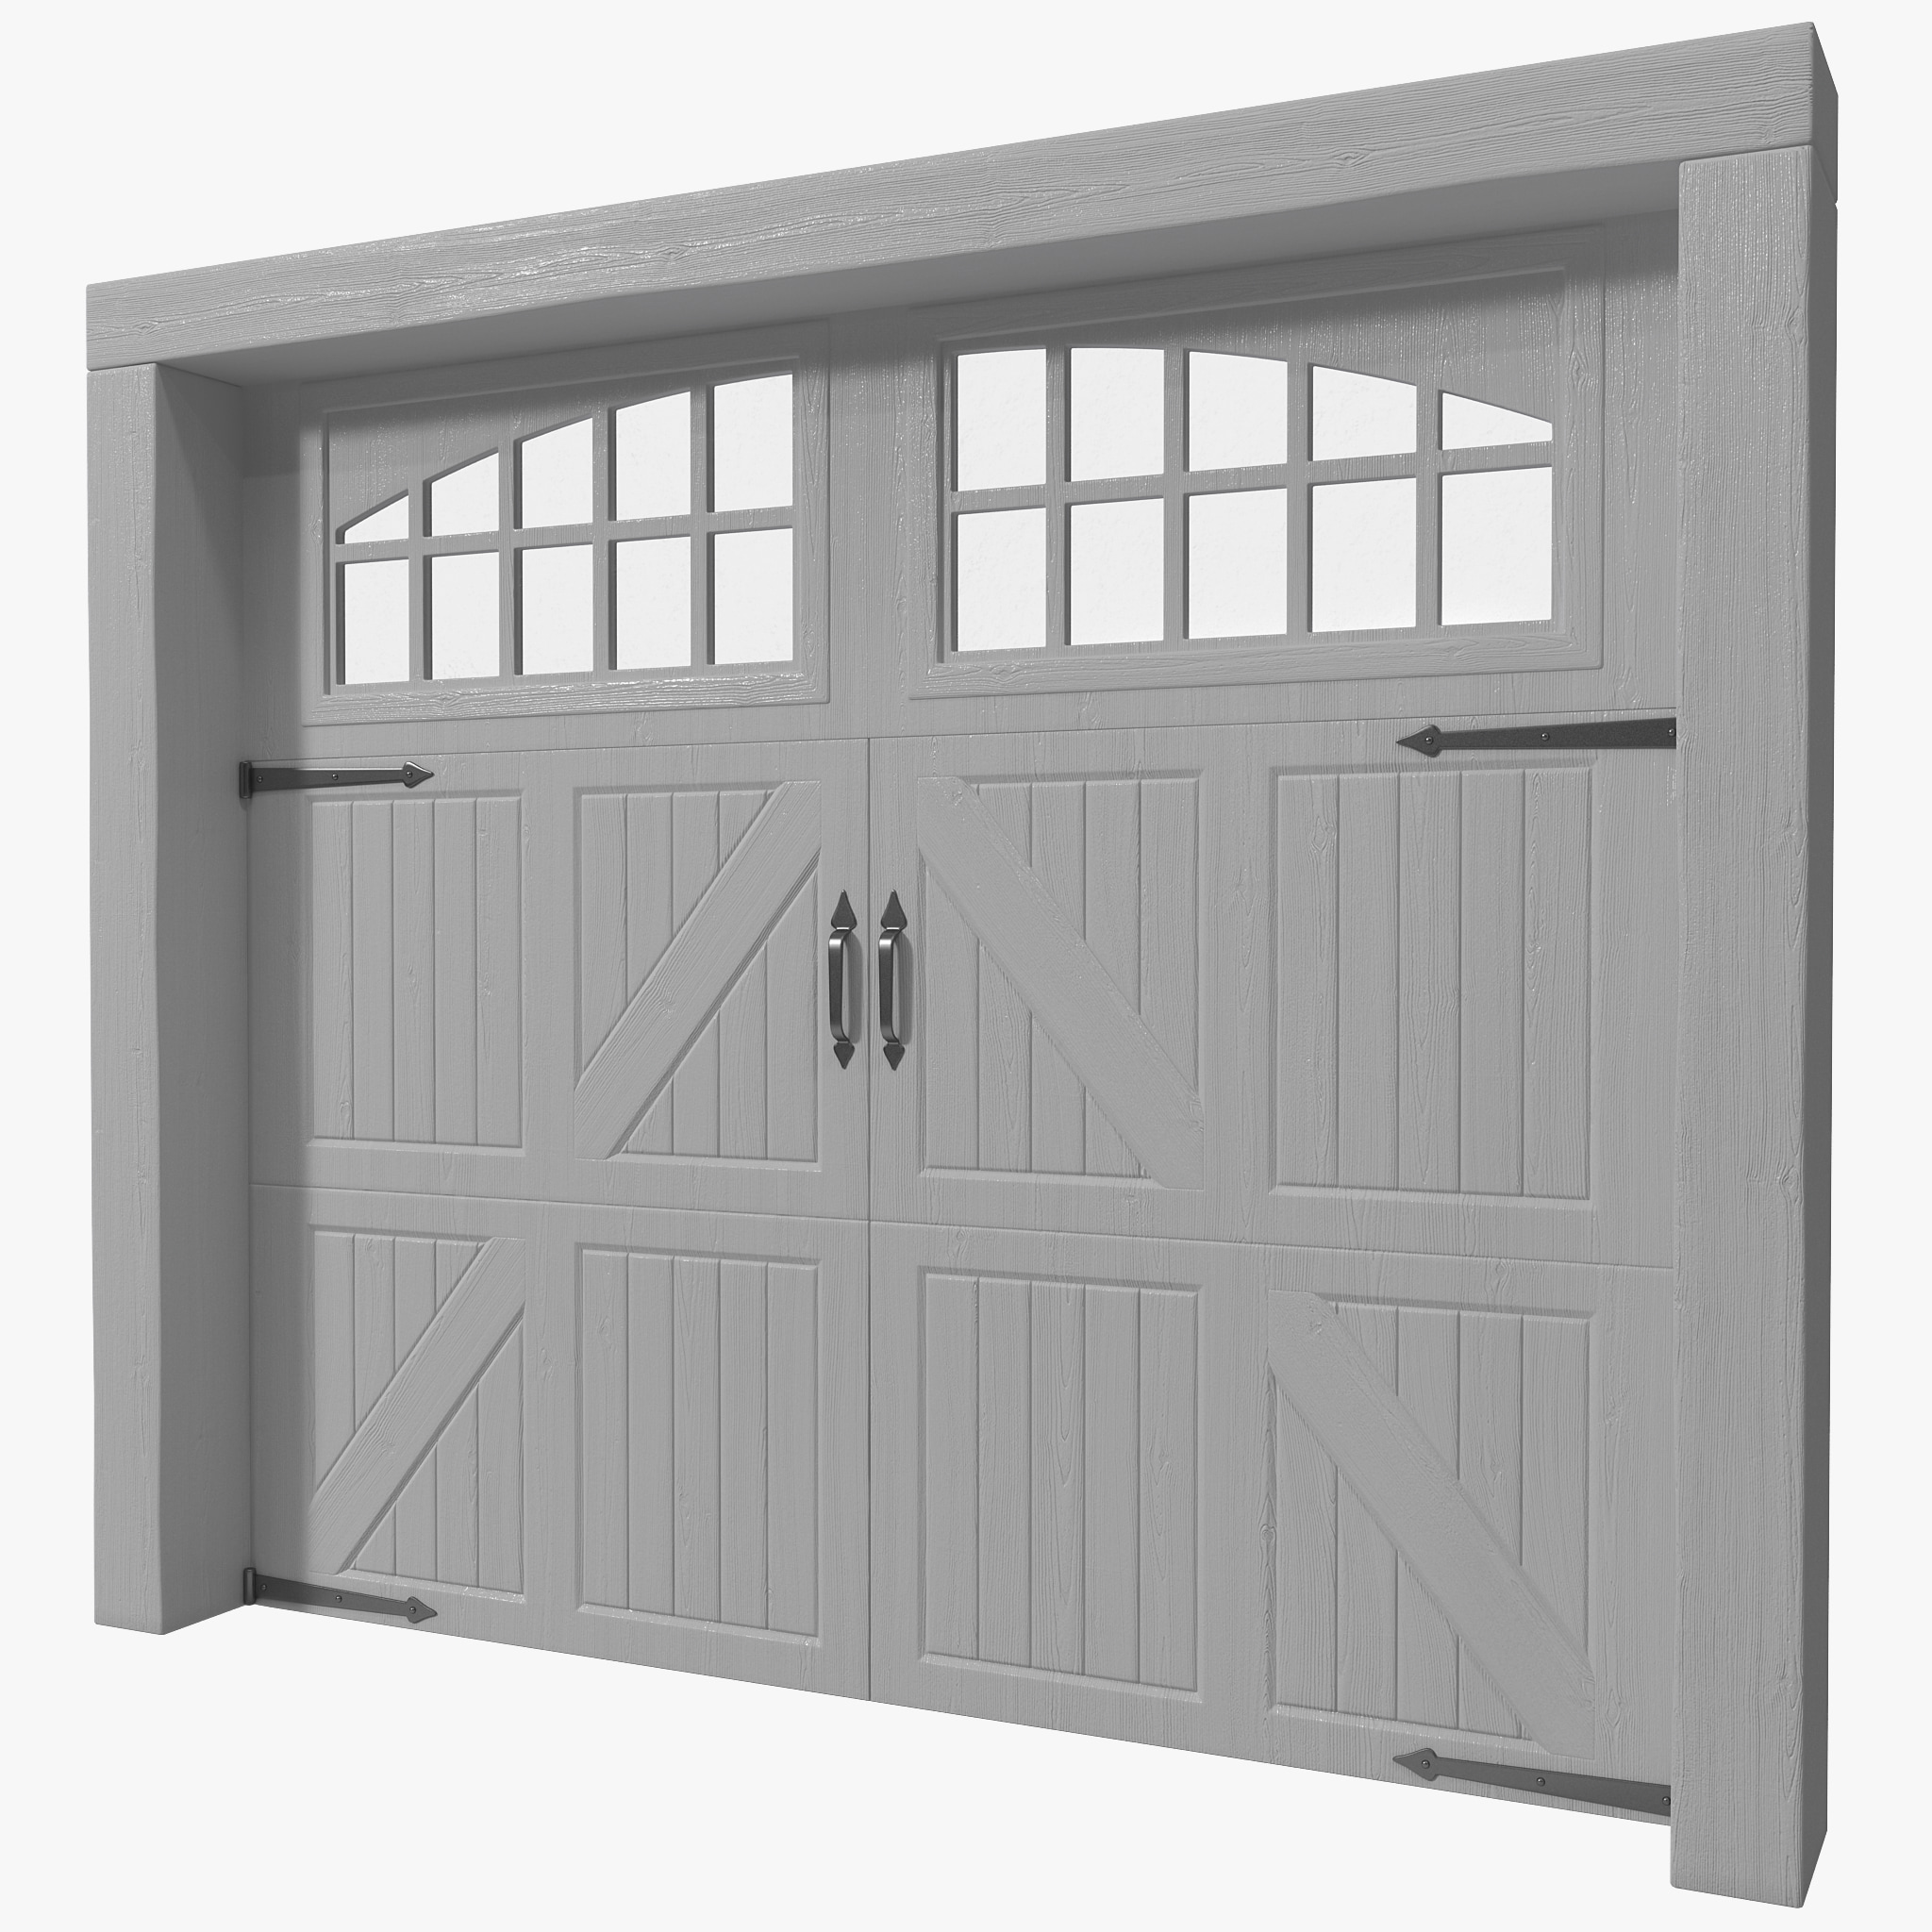 Carriage Garage Door_178.jpg